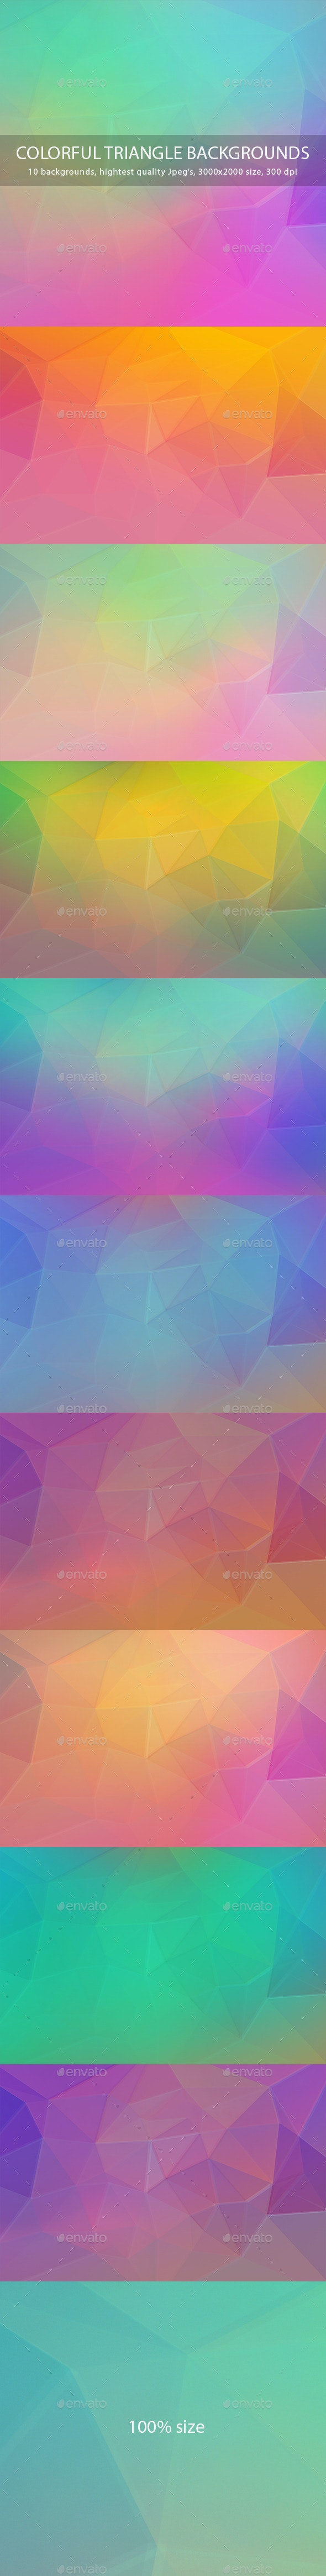 Colorful Triangle Backgrounds - Abstract Backgrounds